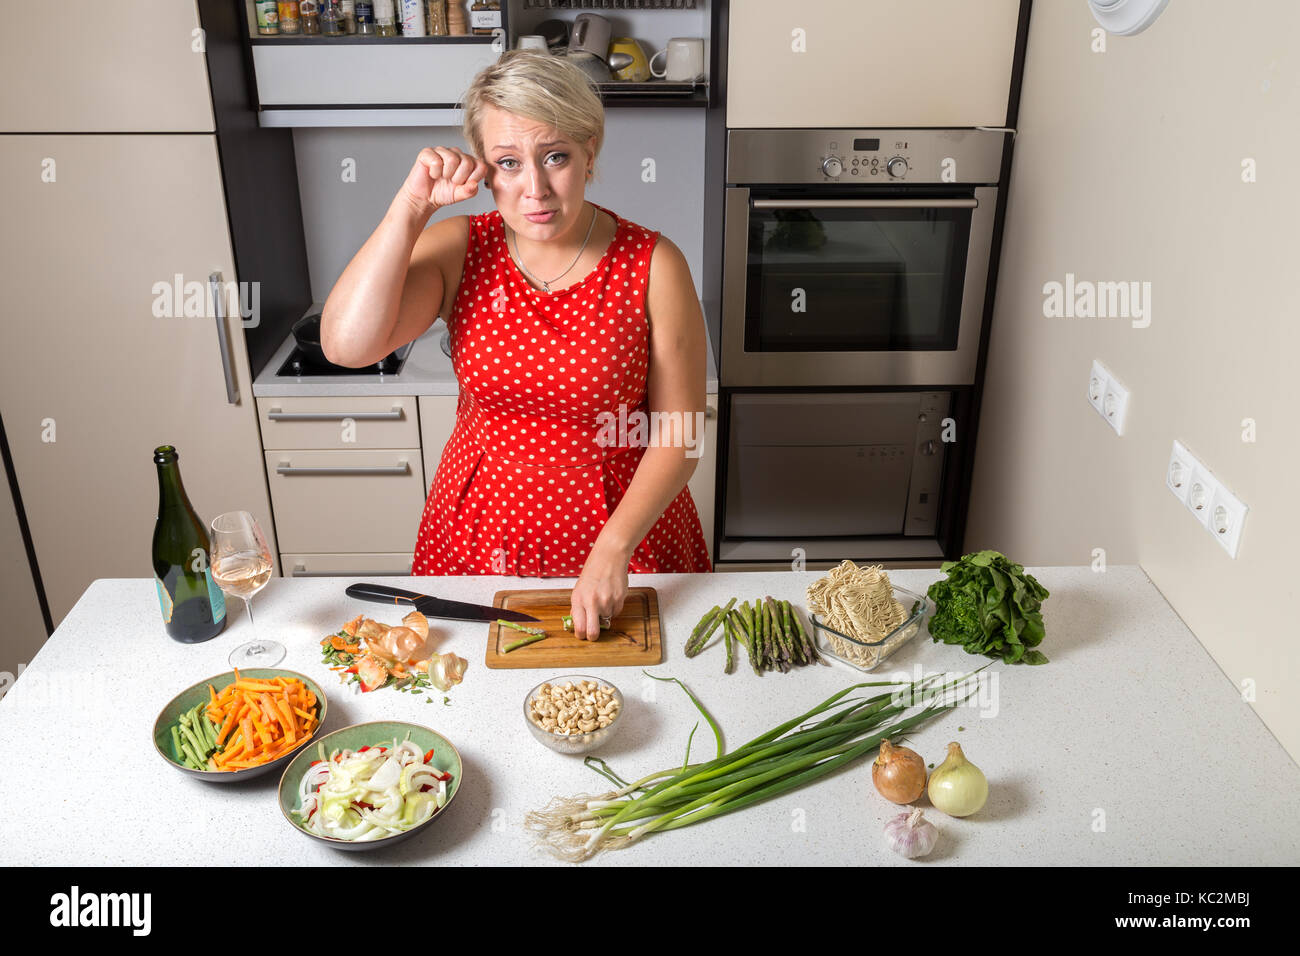 Female in kitchen cutting asparagus and rubbing her eye Stock Photo